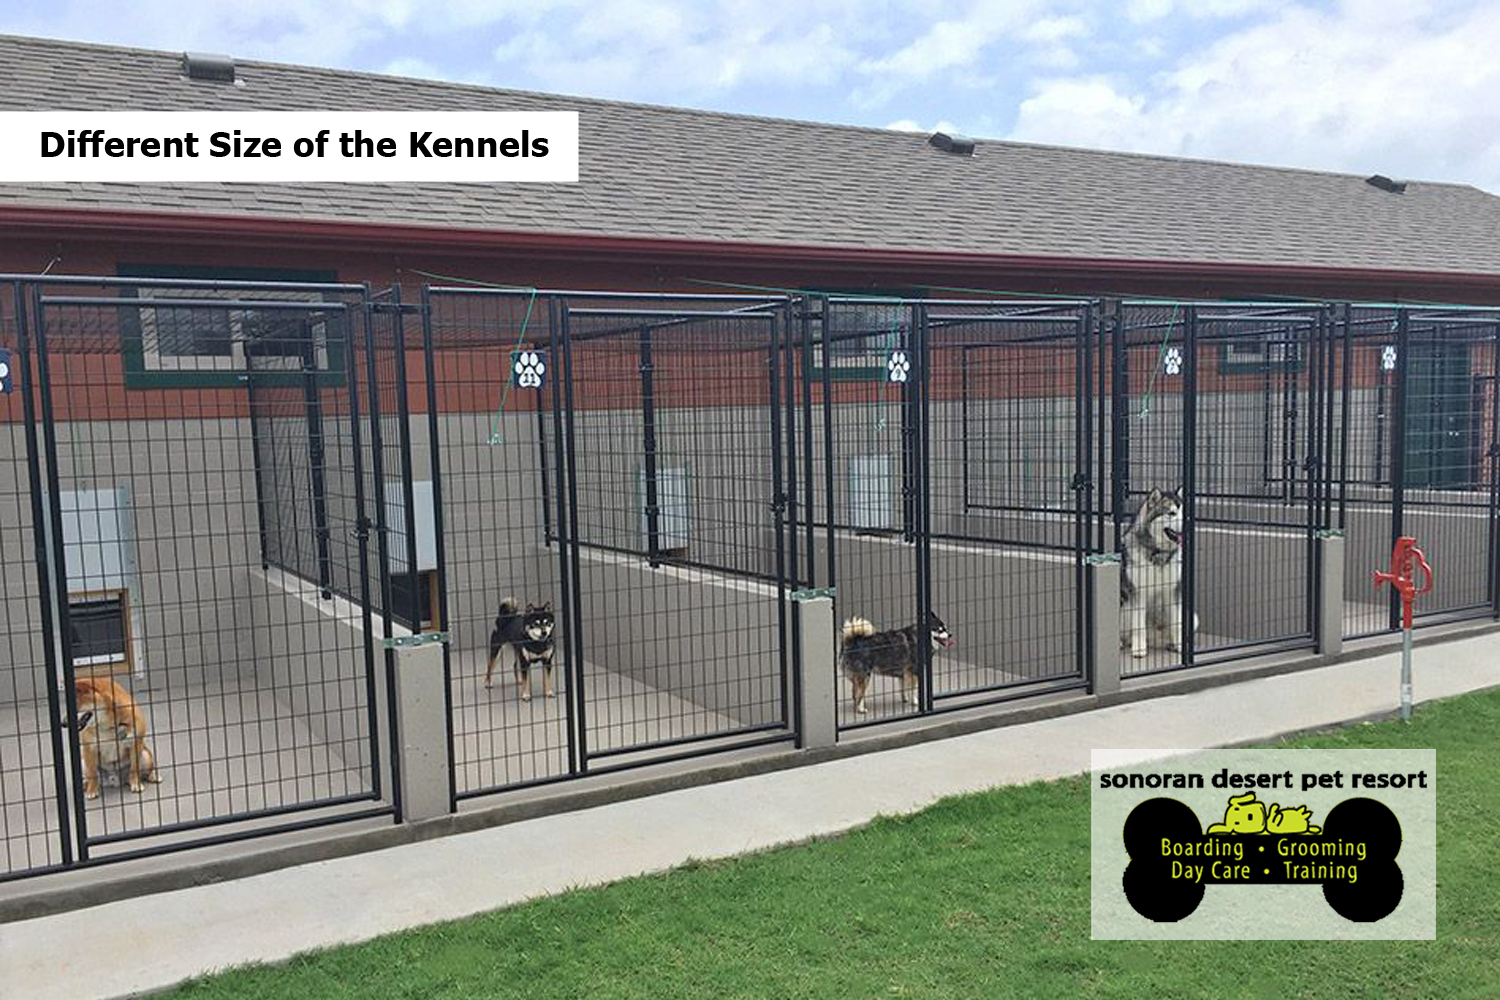 Different Size of the Kennels